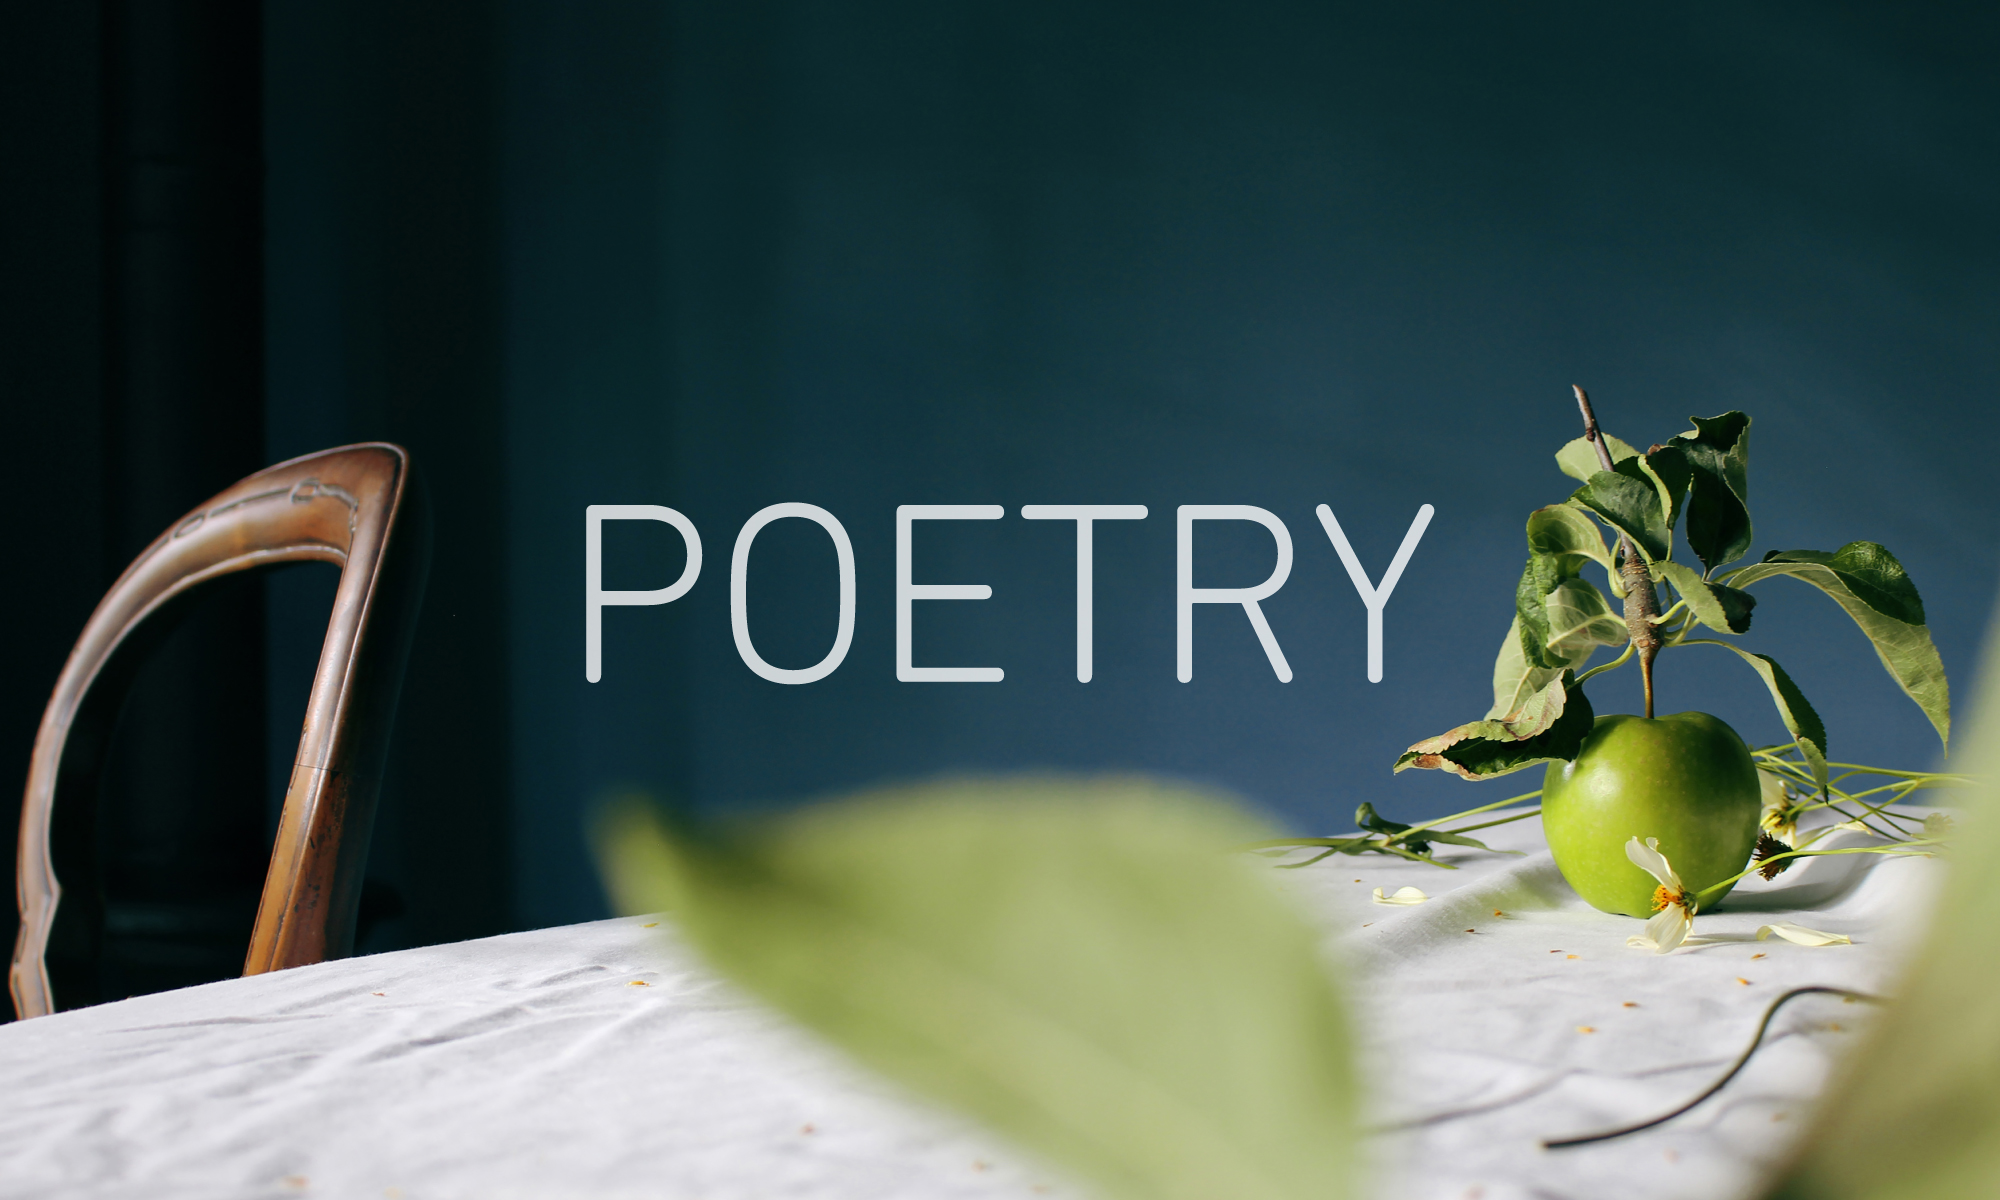 Image of a green apple on a white table cloth to the right, a wooden chair back to the left, and the word 'POETRY' in the centre